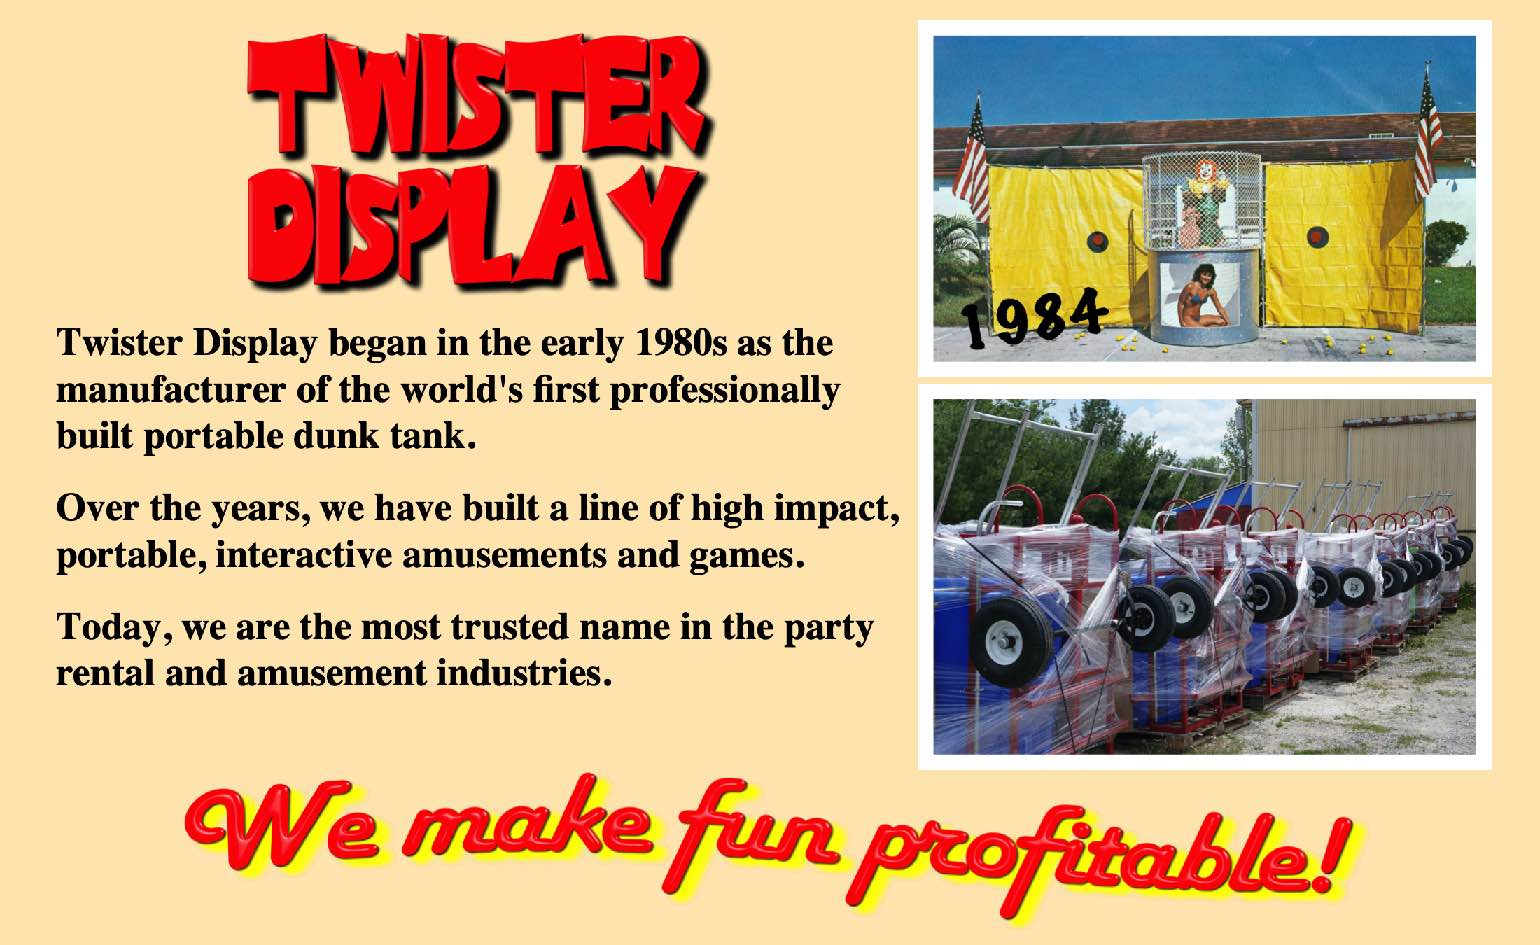 Twister Display began in the early 1980s as the manufacturer of the world's first professionally built portable dunk tank.   Over the years, we have created a line of high impact, portable, interactive amusements and games.